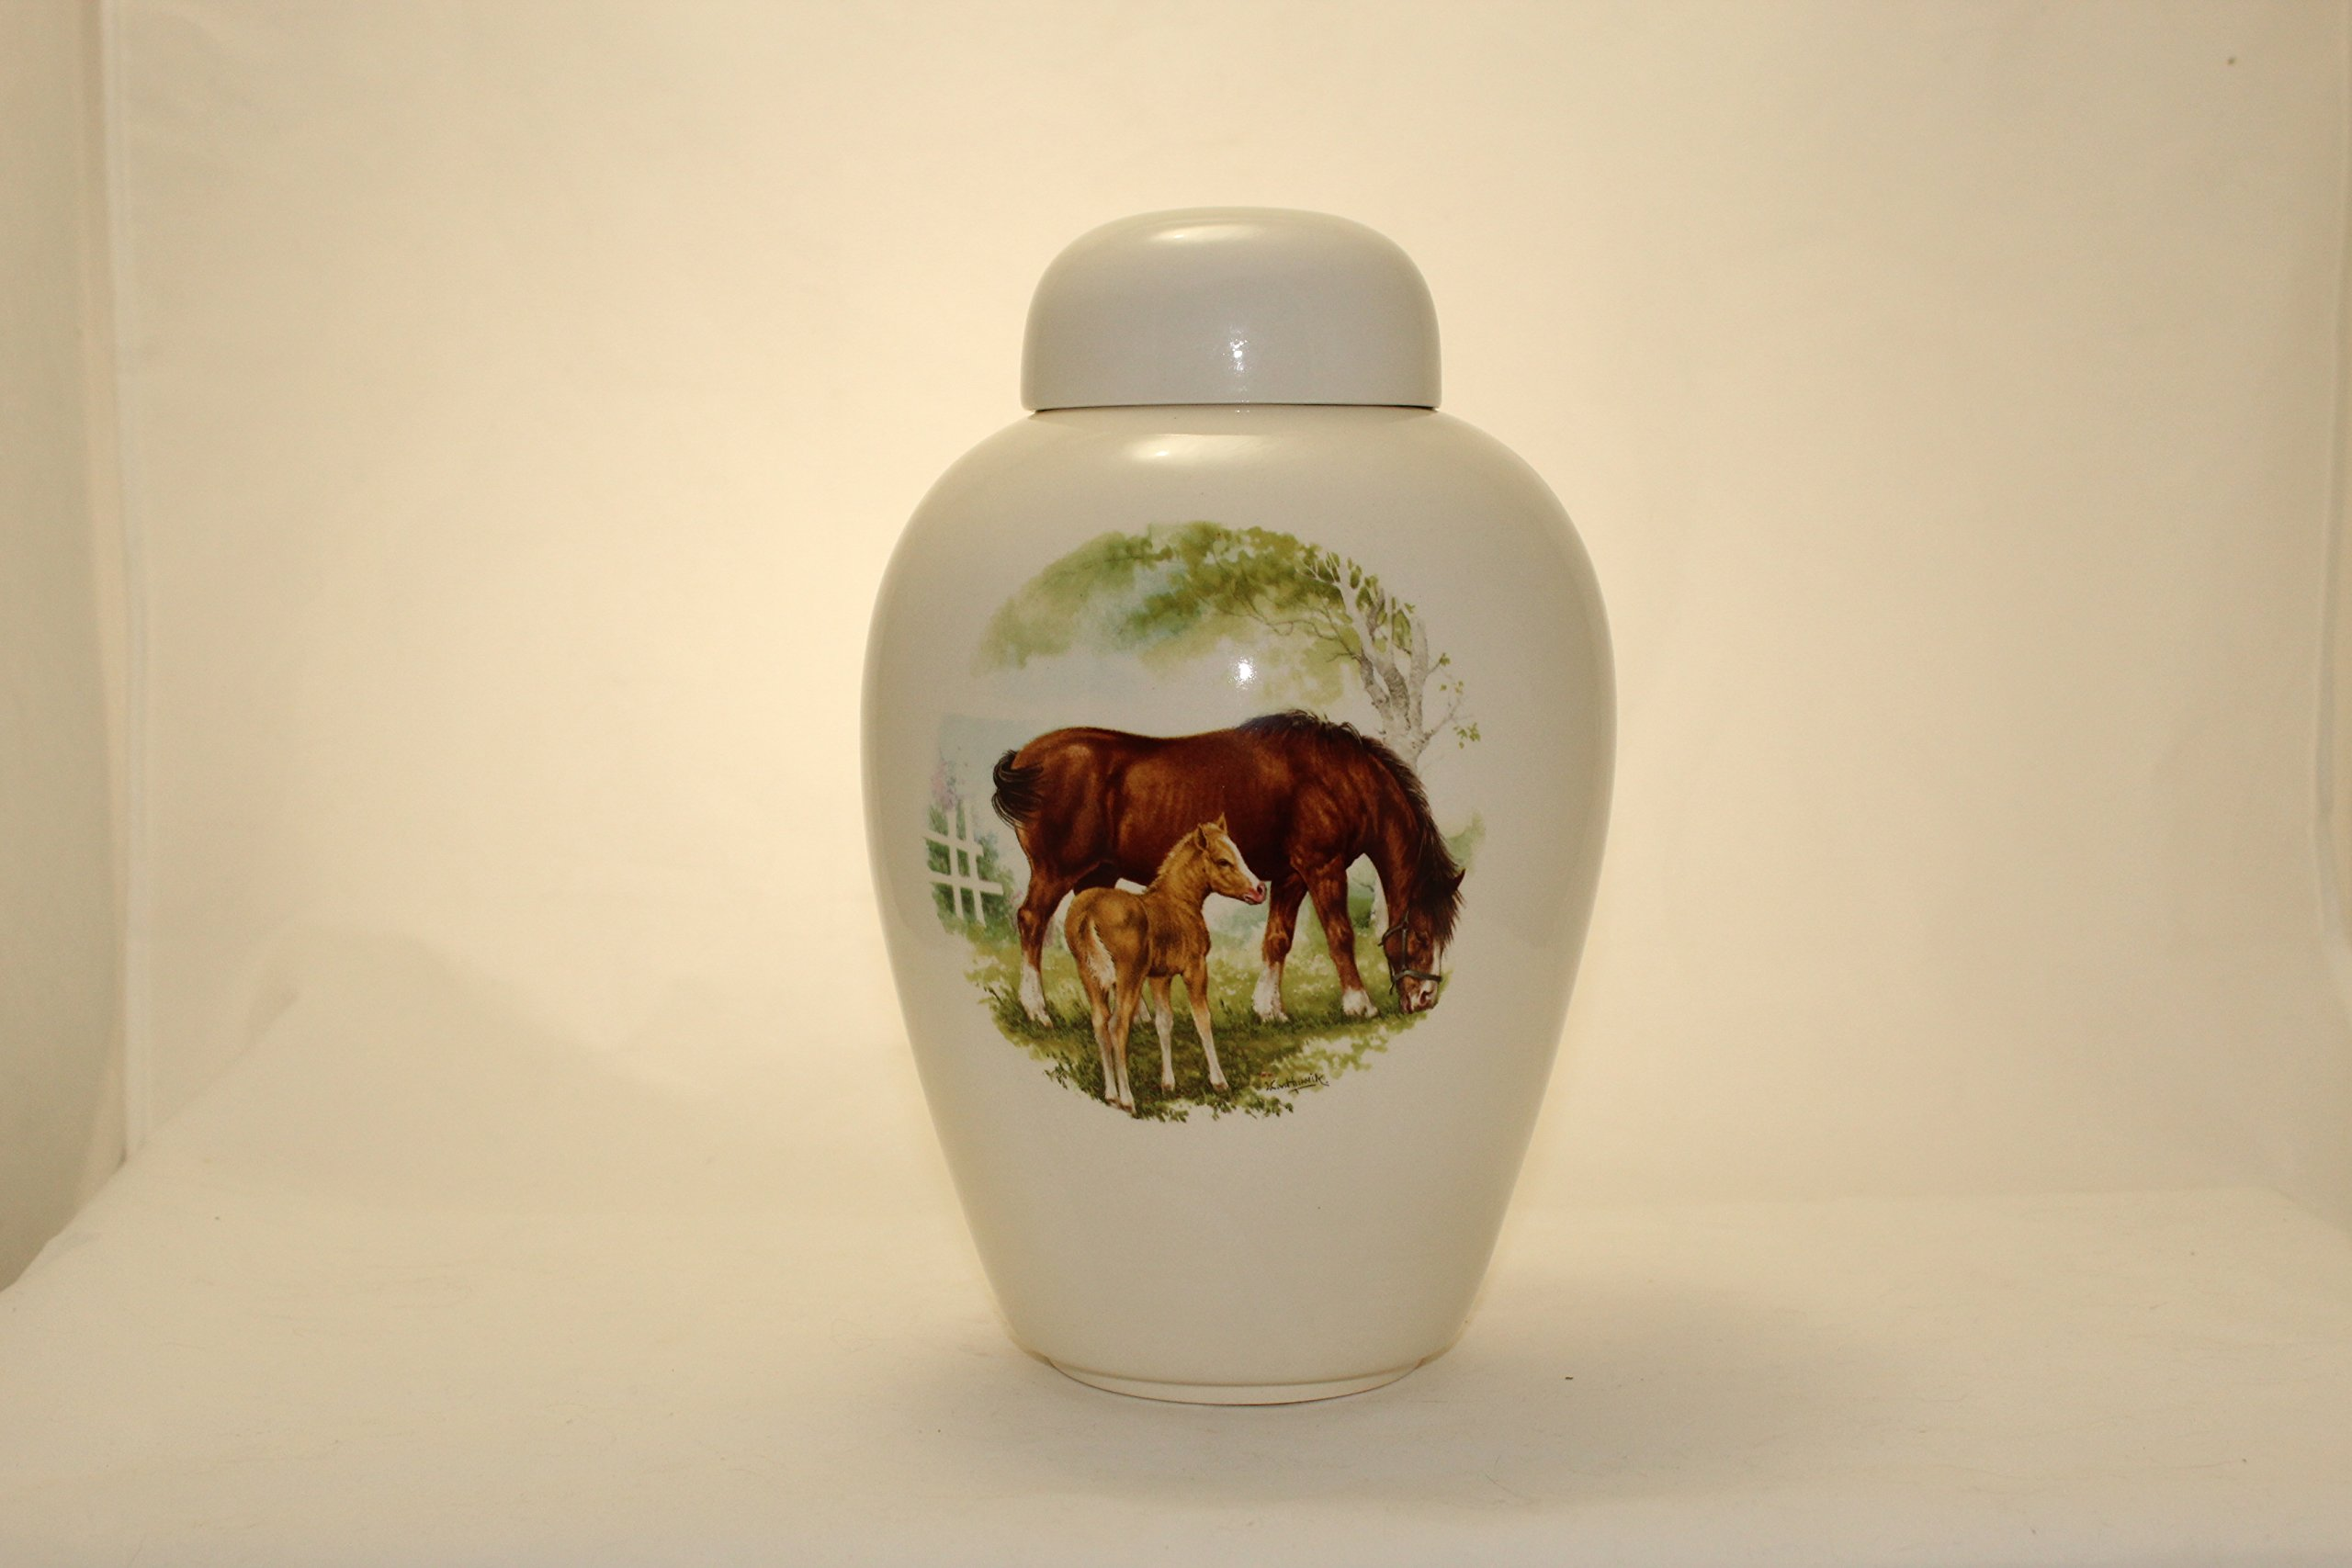 Horse-Funeral Urn - Cremation Urn for Human Ashes - Hand Made Pottery